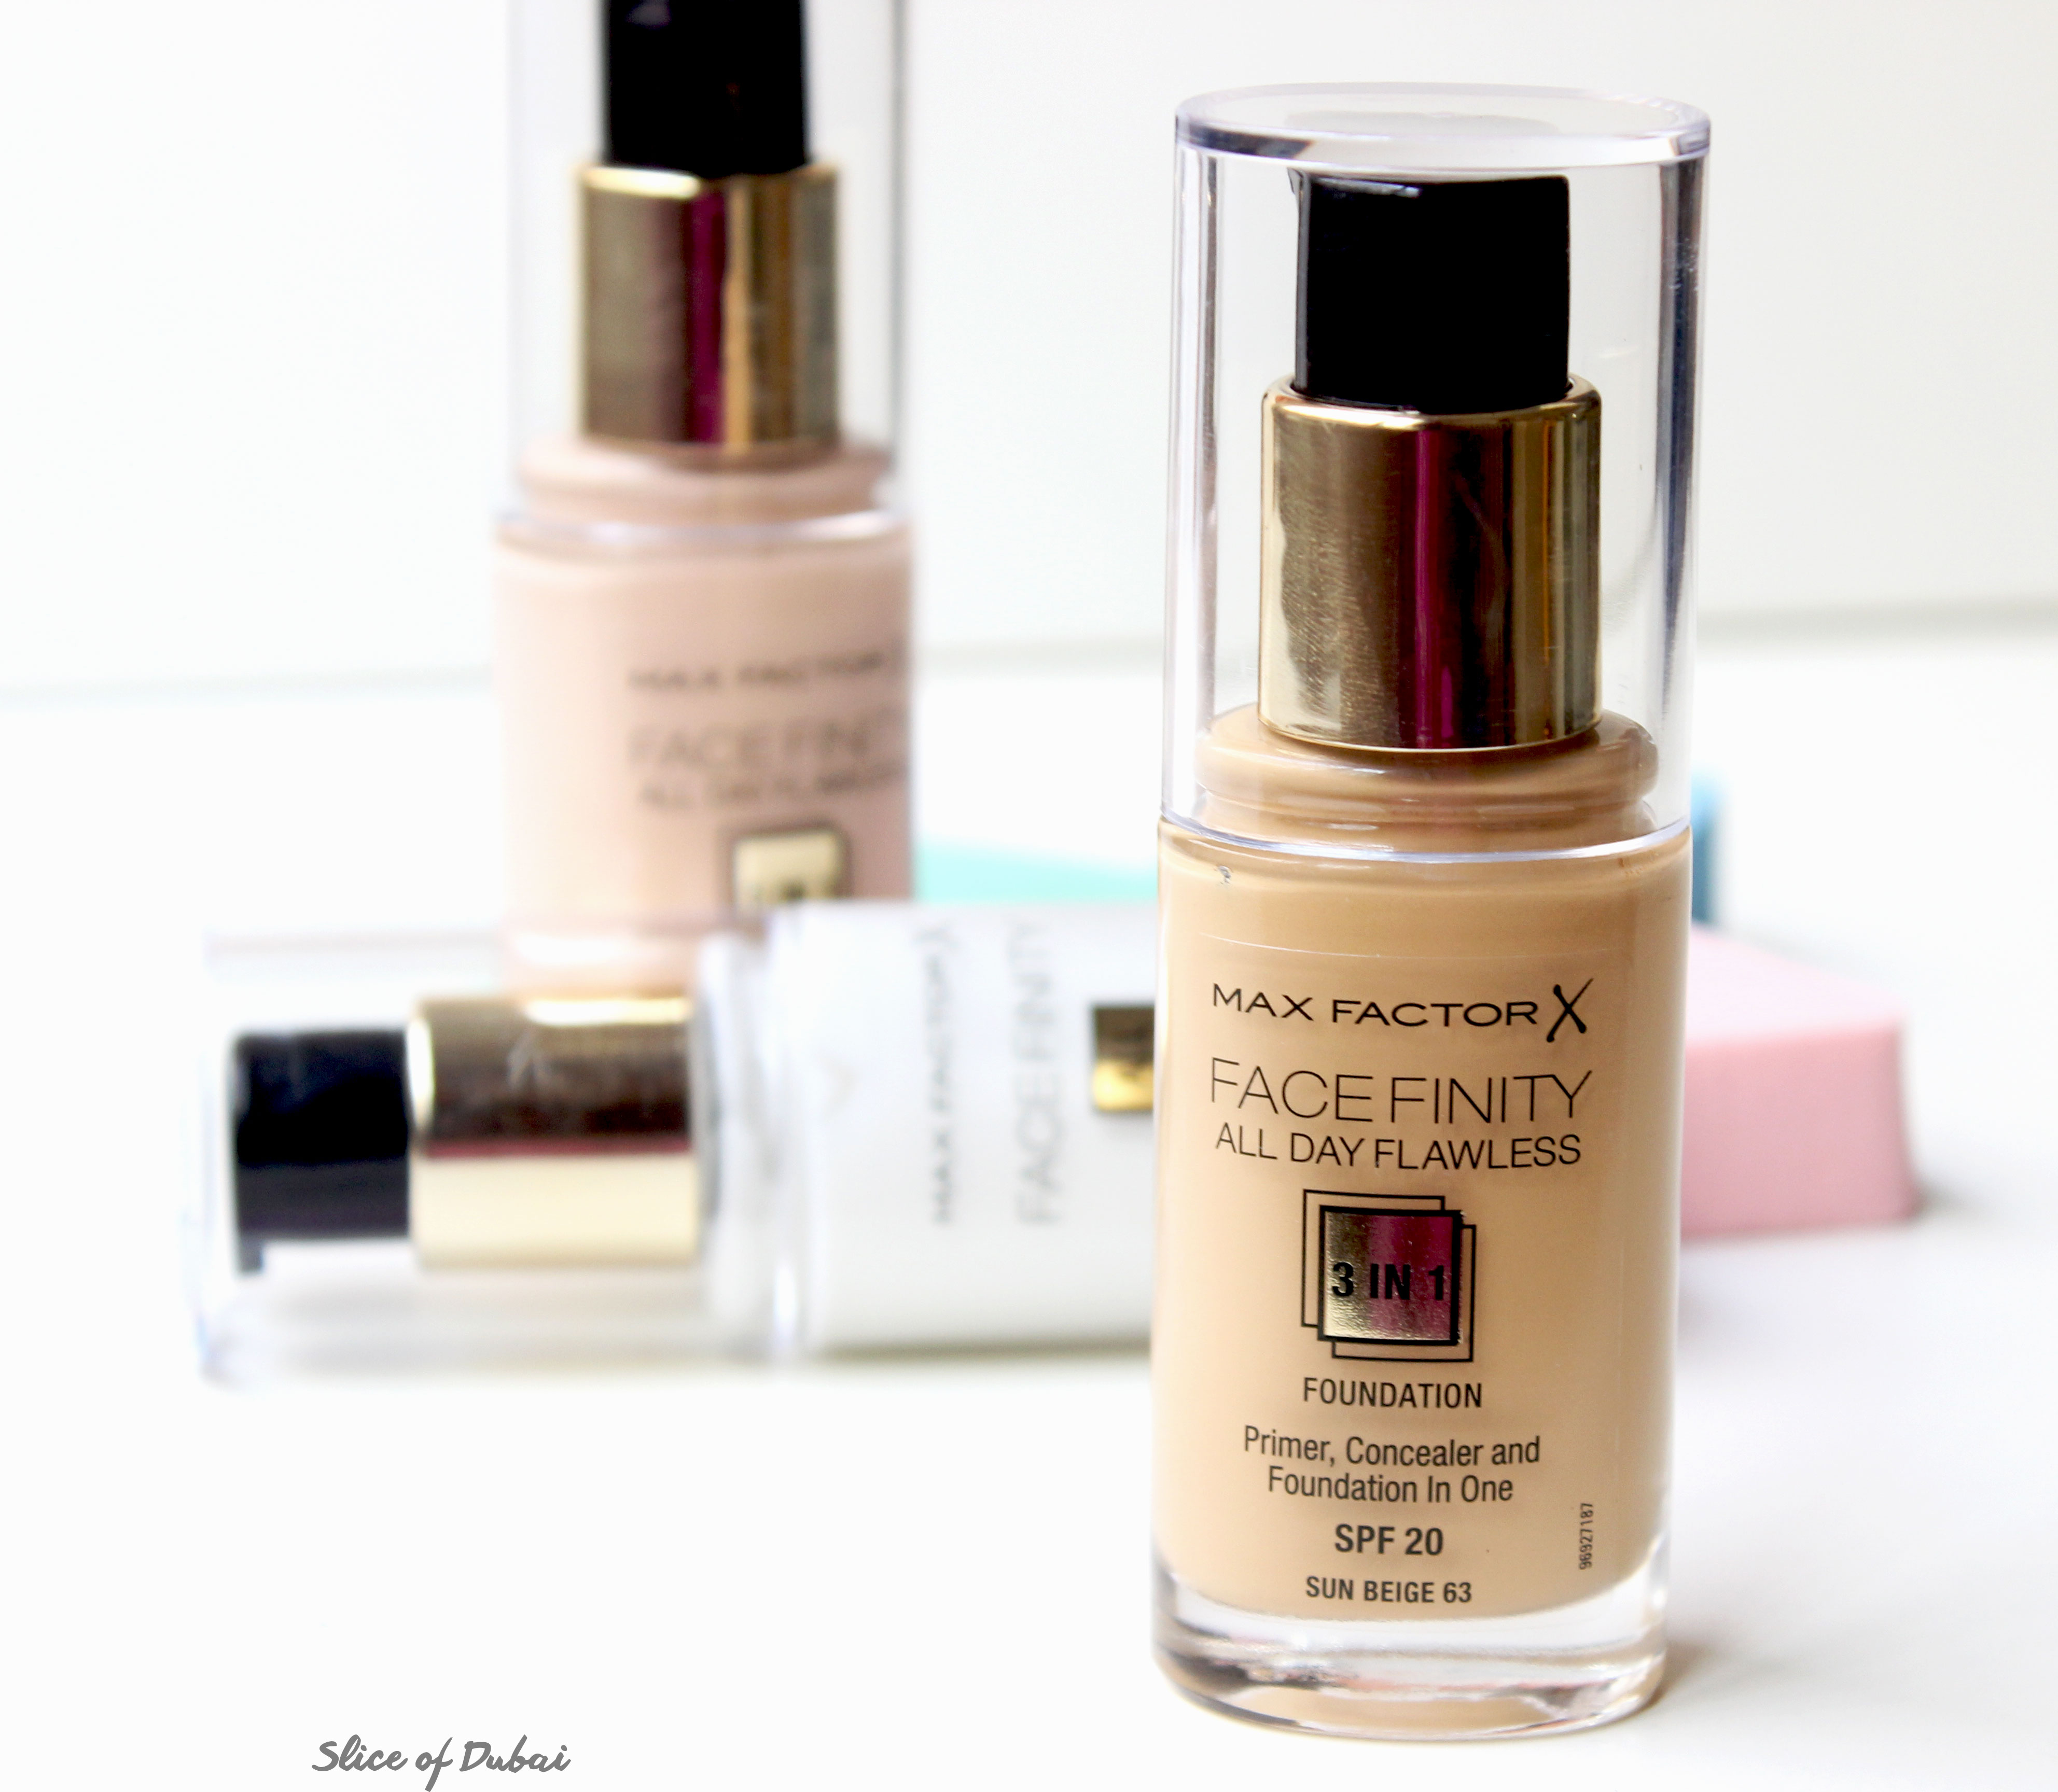 Facefinity All Day Flawless 3-in-1 Foundation di Max Factor